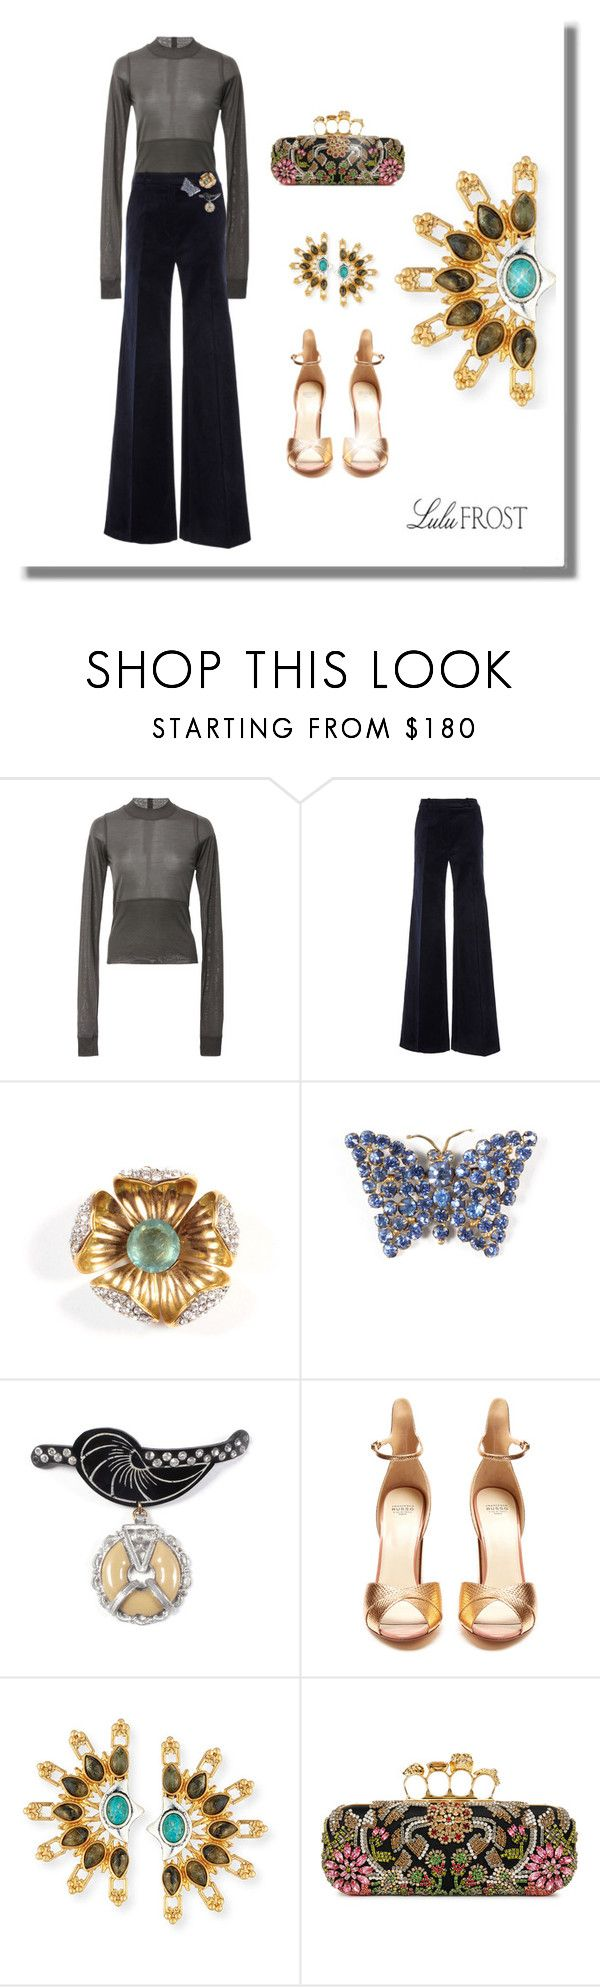 """""""Exquisite LuluFrost"""" by jacque-reid ❤ liked on Polyvore featuring Rick Owens, Martin Grant, Francesco Russo, Lulu Frost and Alexander McQueen"""